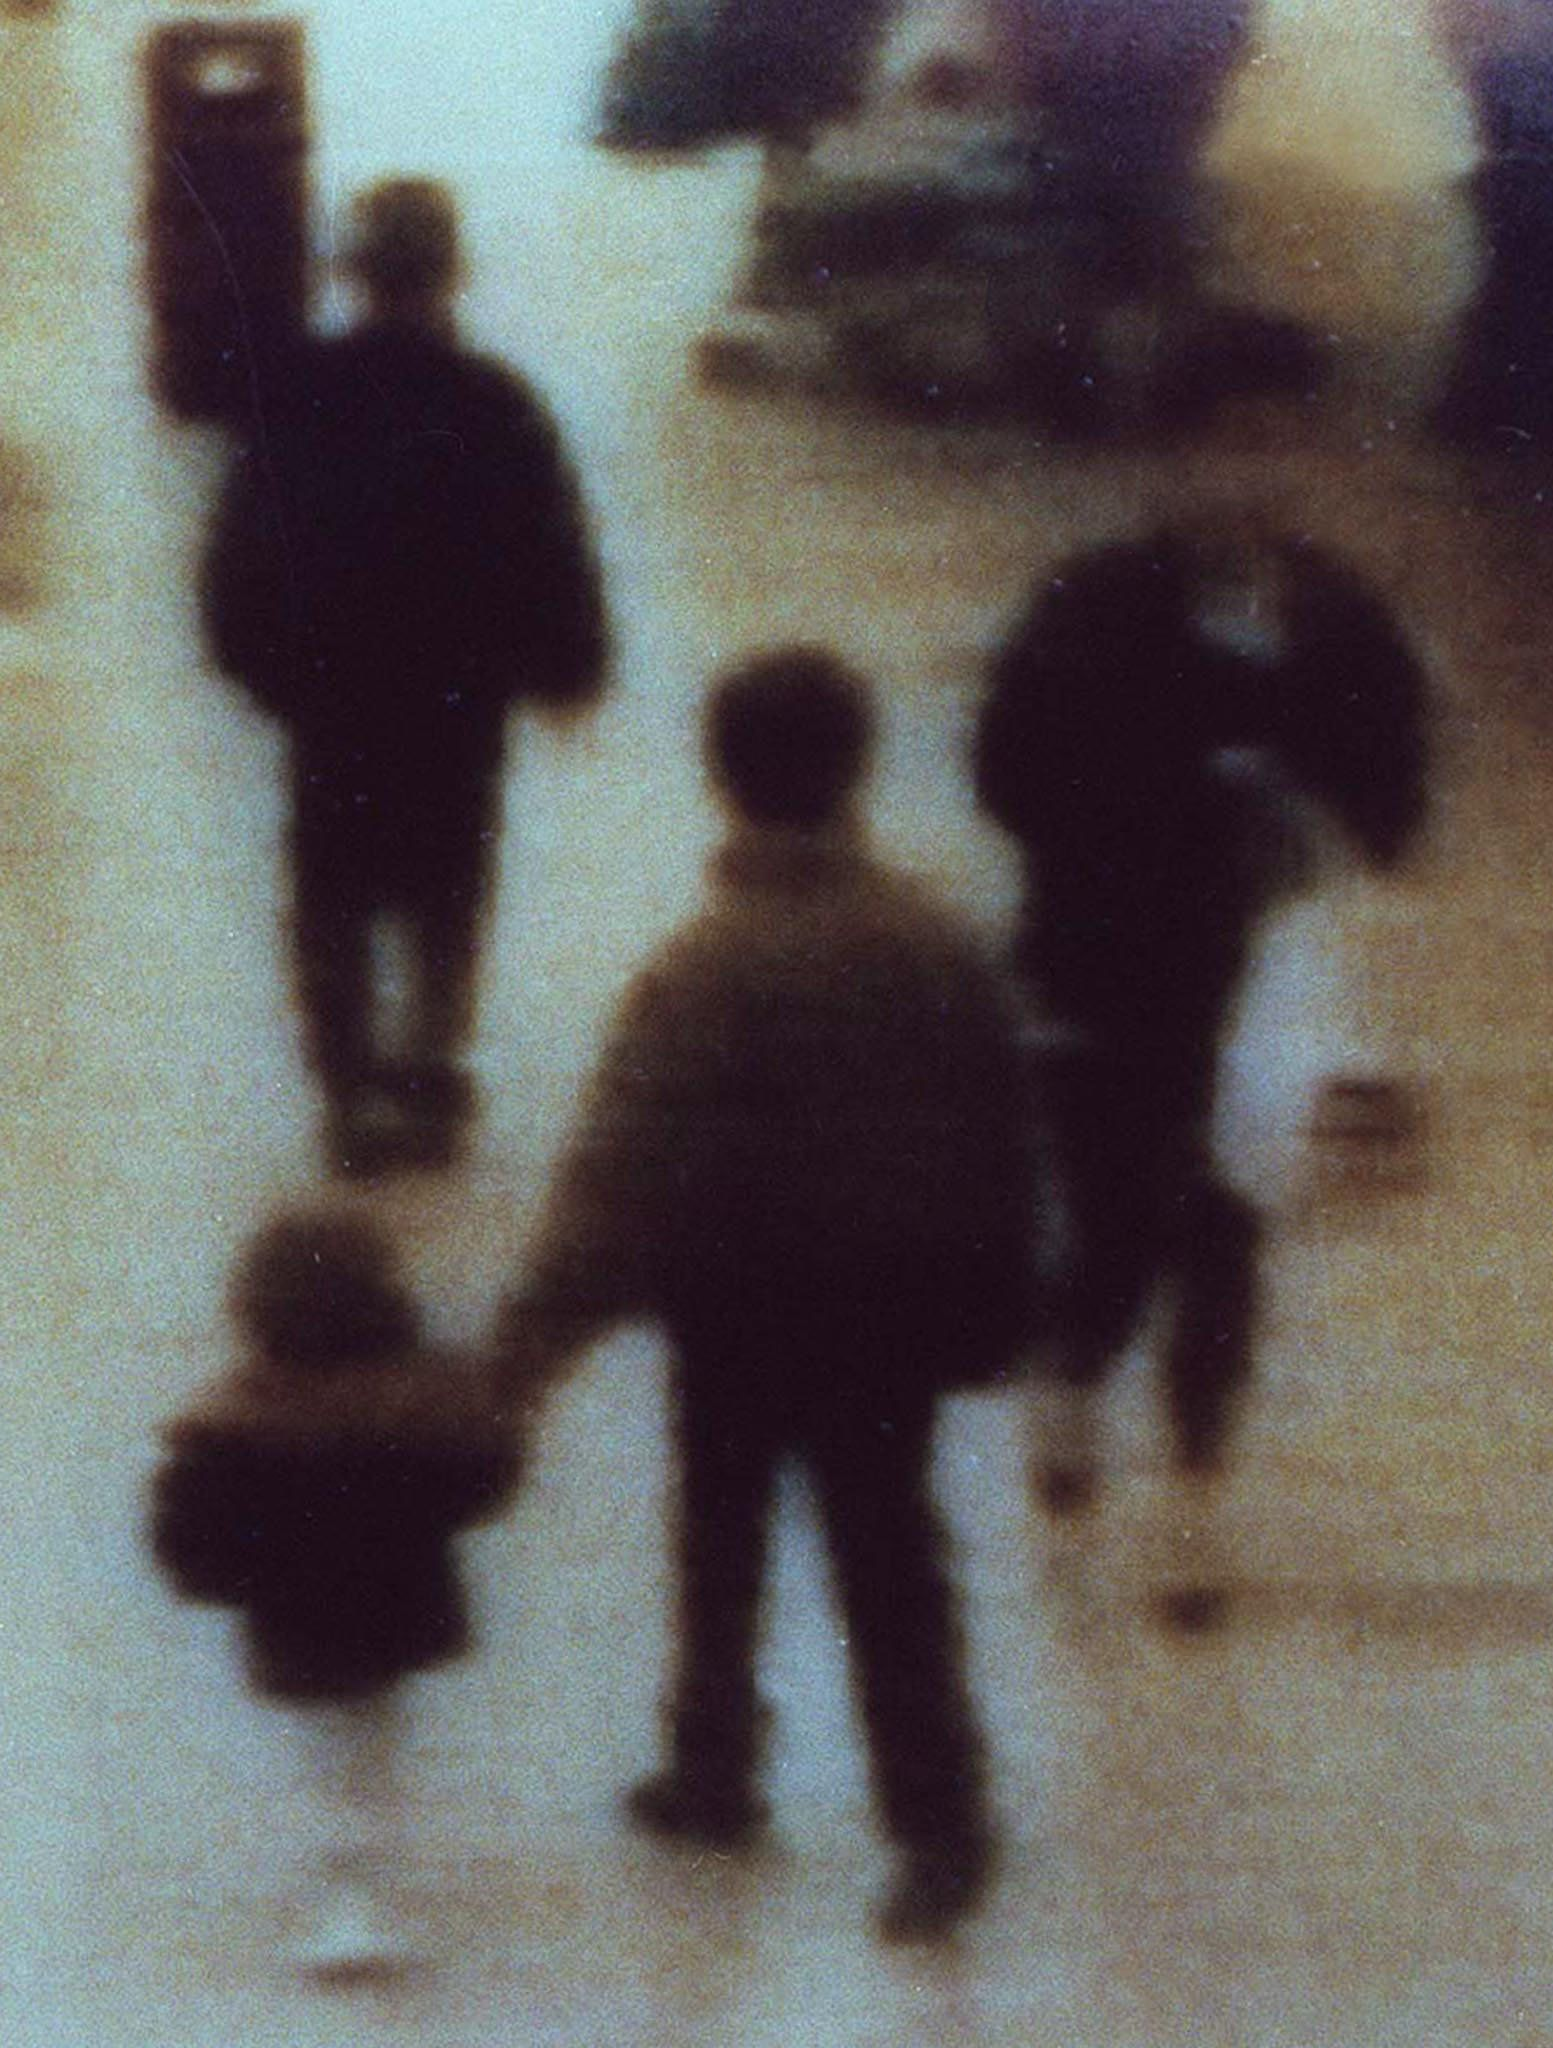 <strong>CCTV footage showing James being led away in the shopping centre he was abducted from</strong>